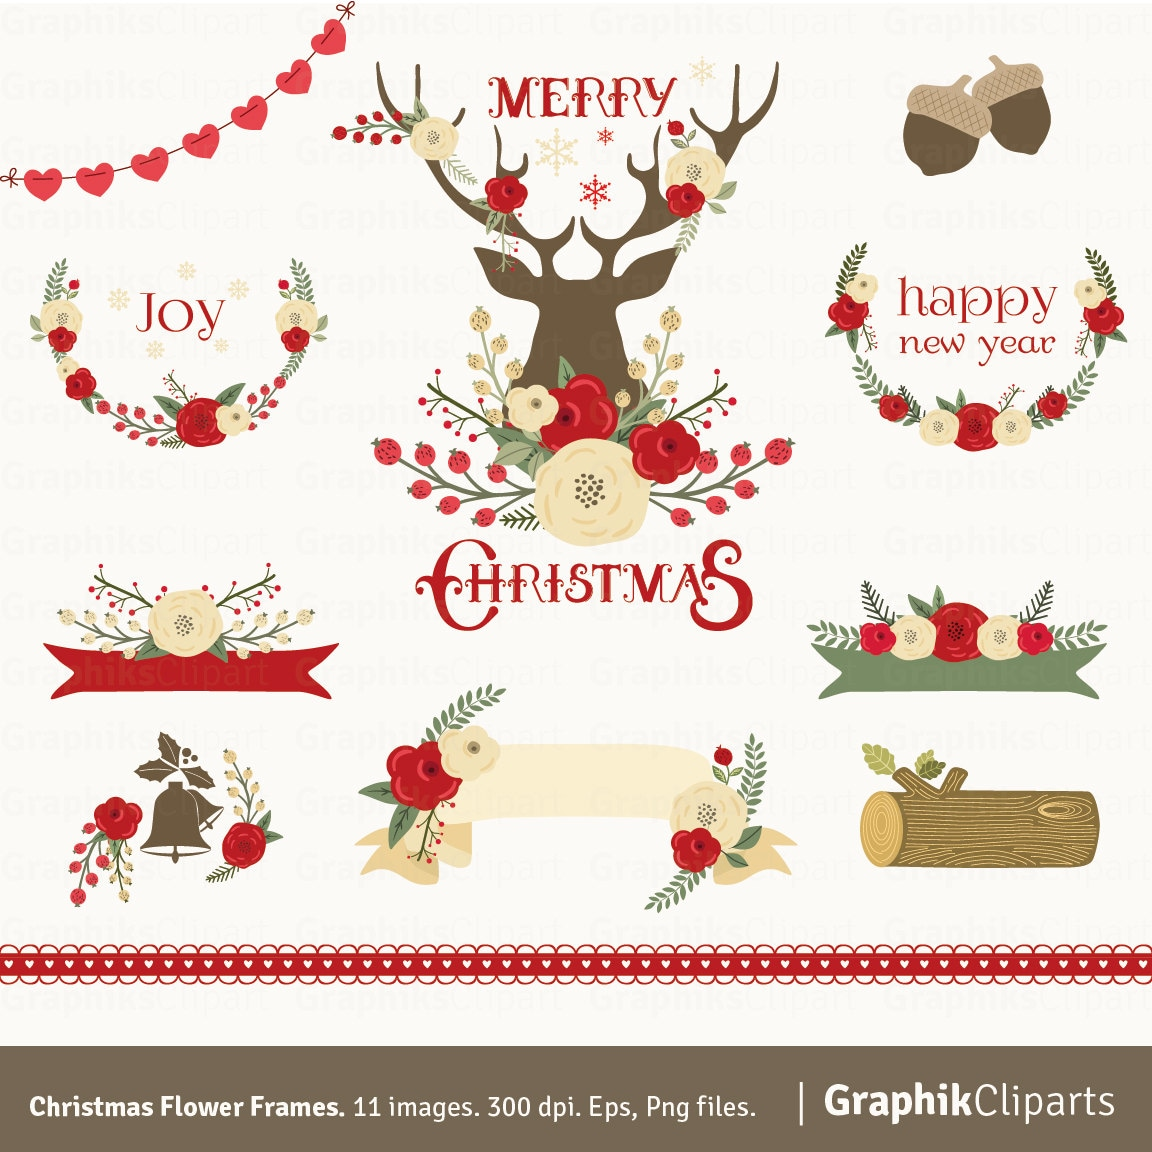 Christmas Flower Frames Clipart. Floral Christmas Clipart. Christmas ...